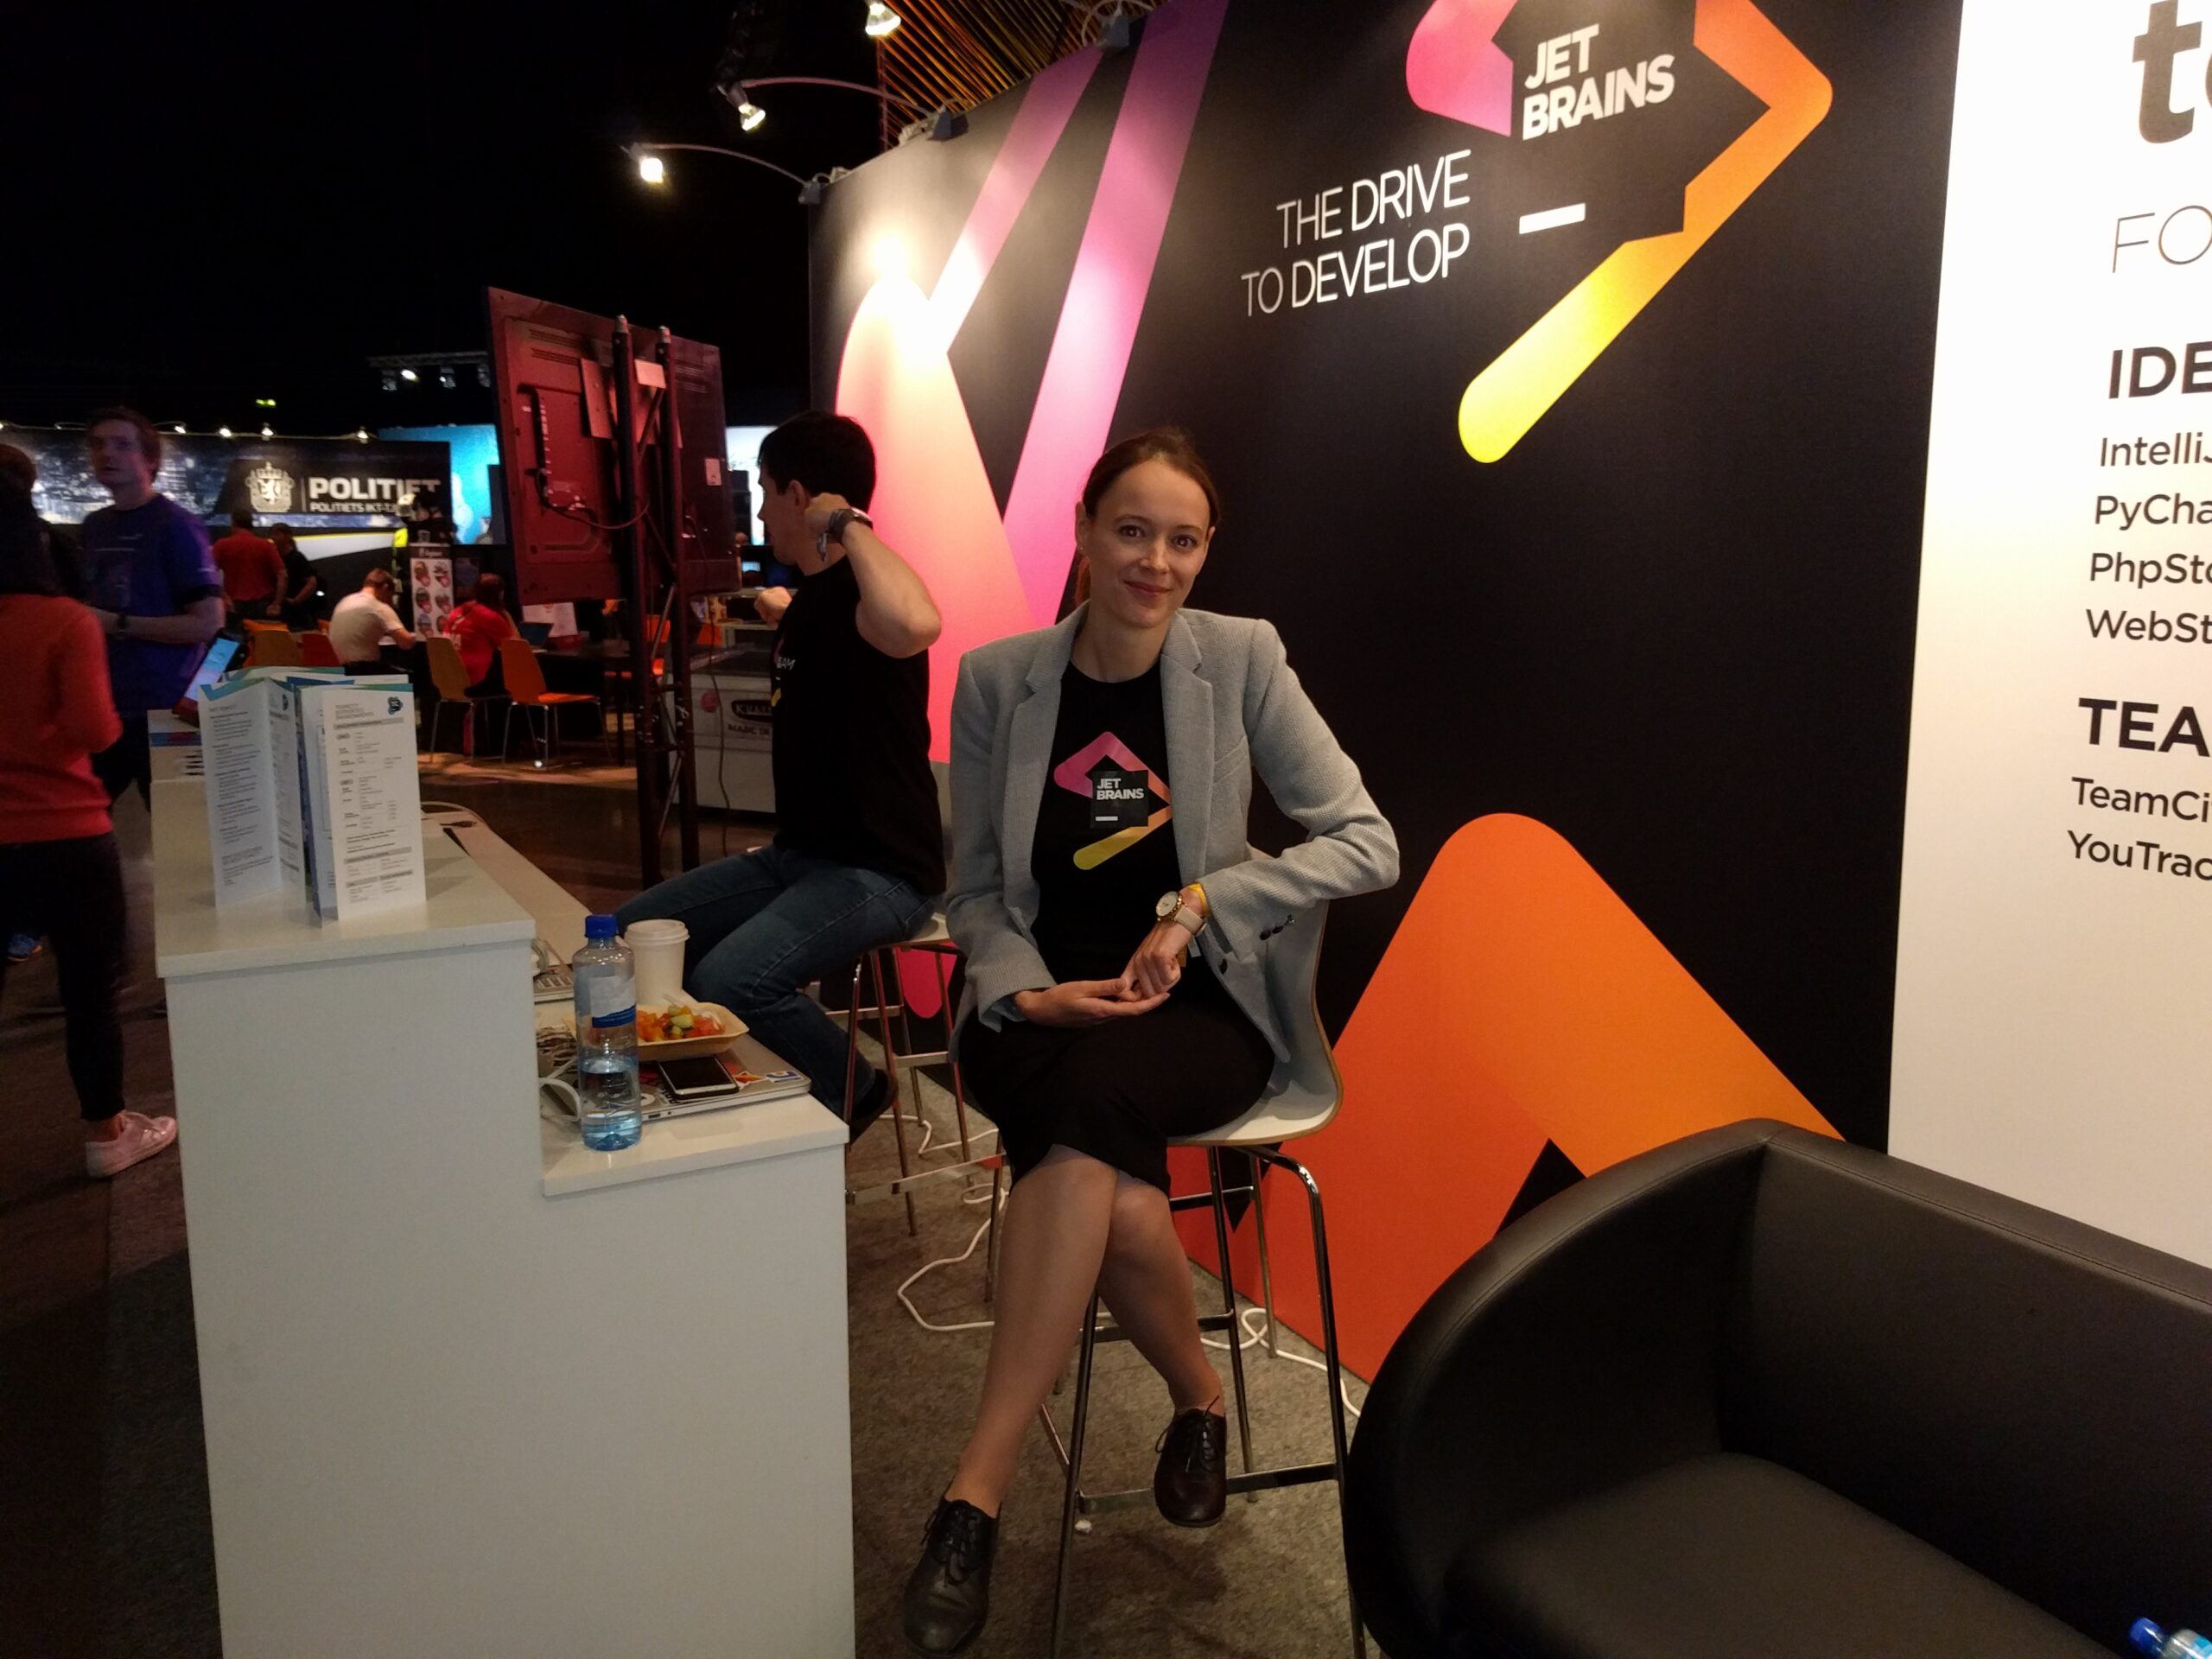 The JetBrains stand